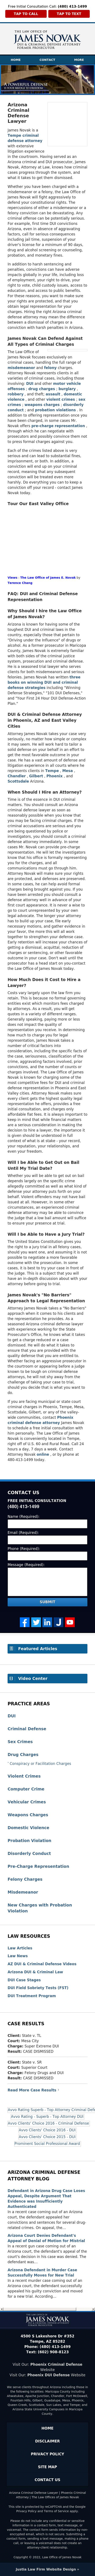 Law Office of James Novak - Tempe AZ Lawyers